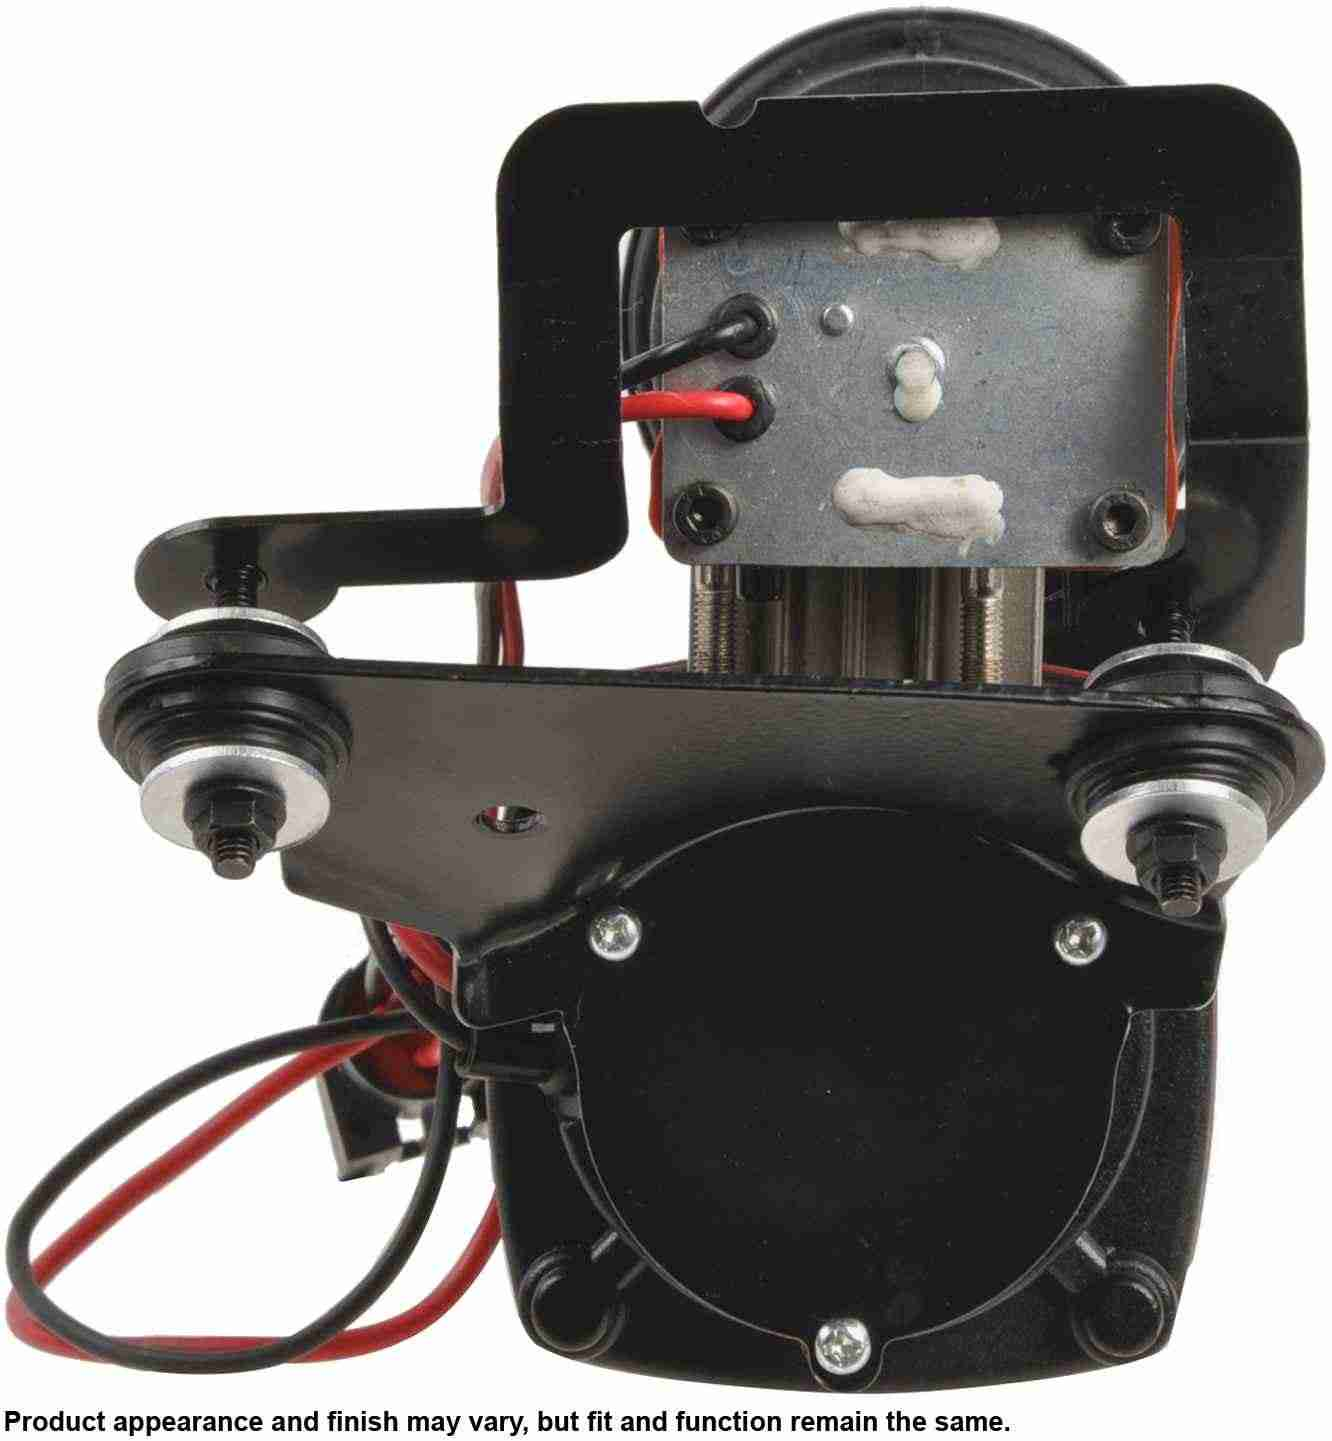 CARDONE/A-1 CARDONE - Reman Suspension Air Compressor - A1C 4J-1002C